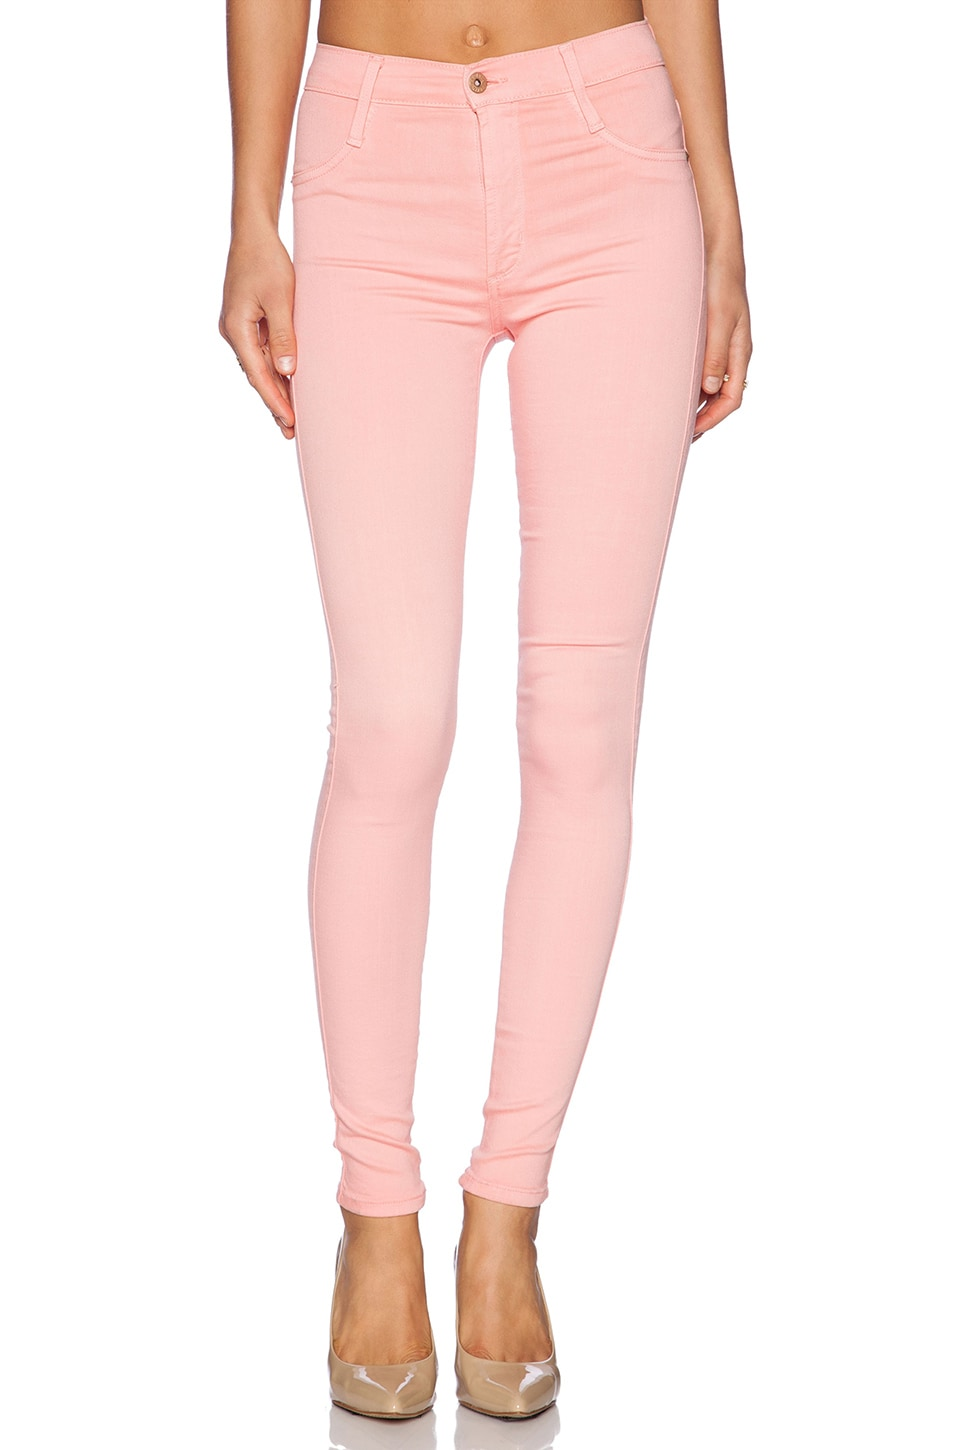 James Jeans High Class Skinny Ultra Flex HD Color Skinny in Pink Lemonade